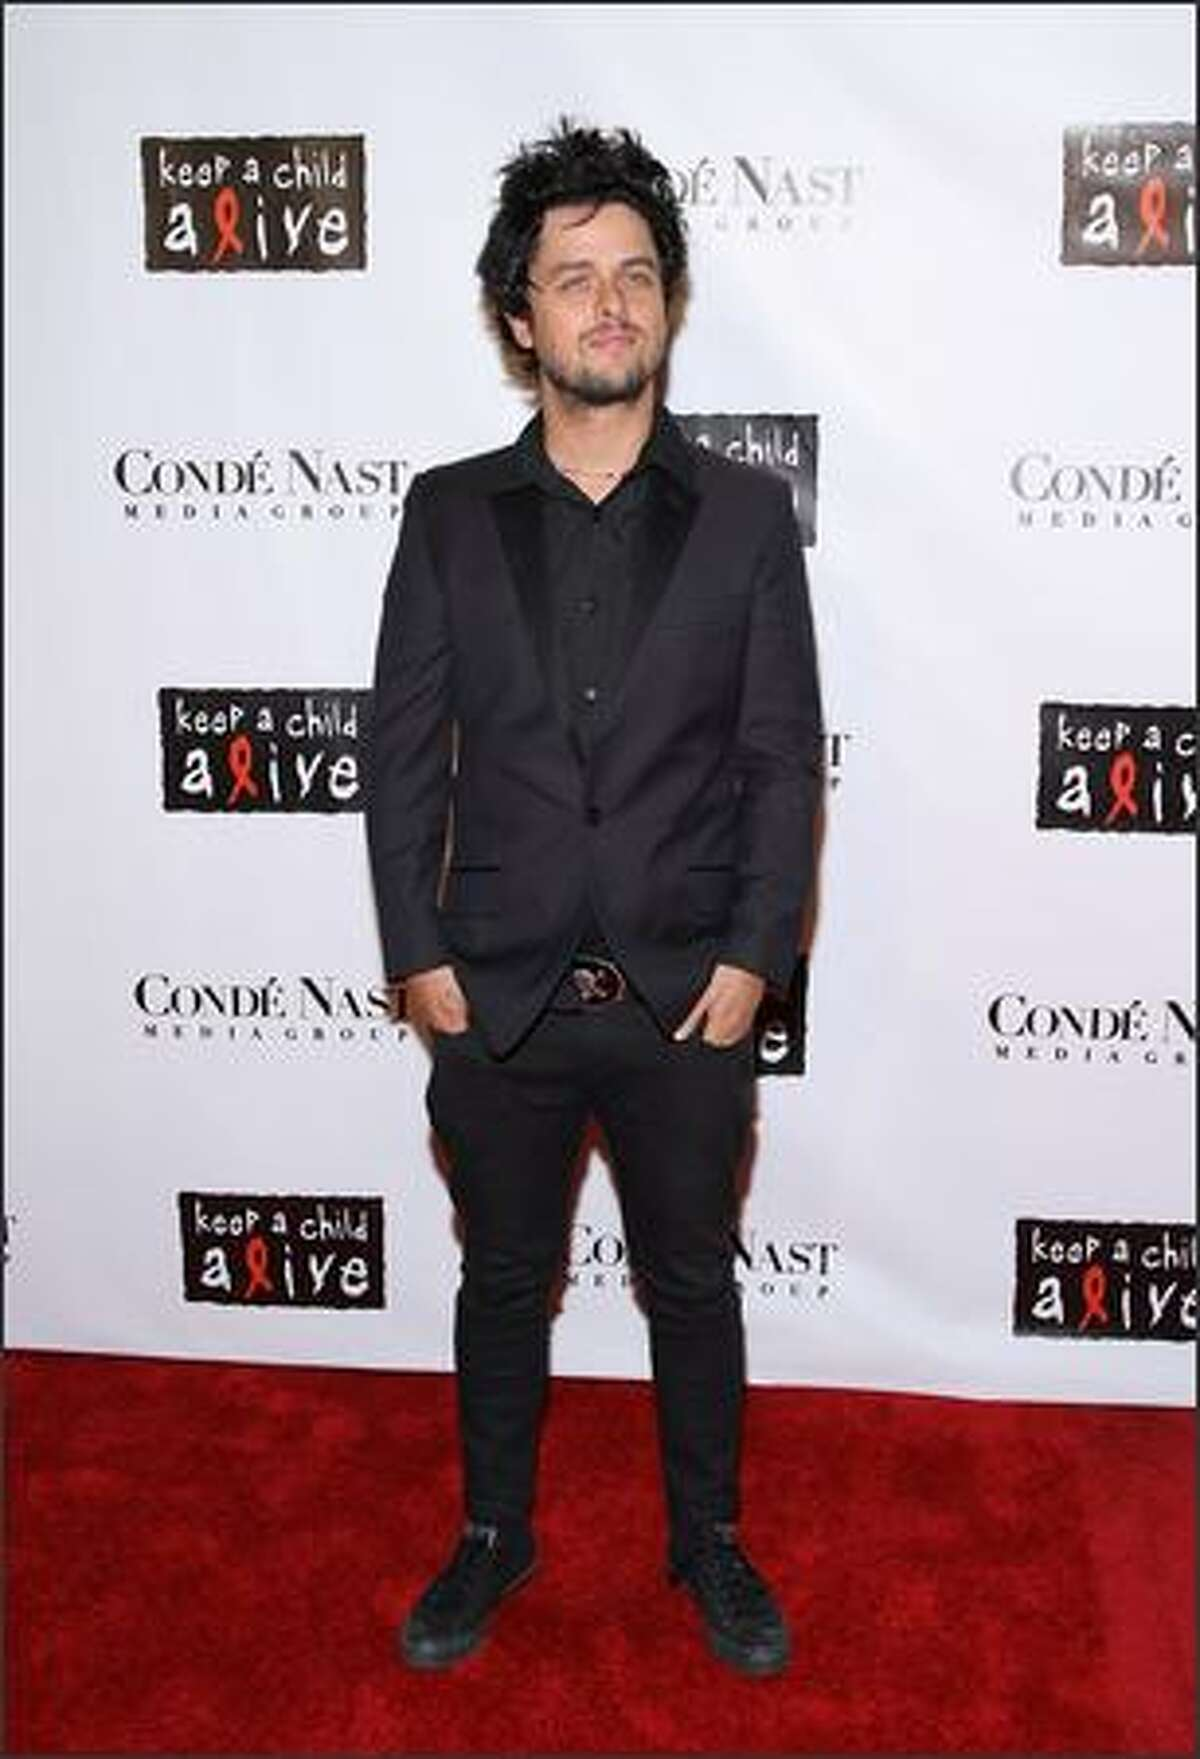 Musician Billy Joe Armstrong of Green Day arrives at the 4th Annual Black Ball concert for Keep a Child Alive (KCA) presented by the Conde Nast Media Group at Hammerstein Ballroom in New York City.